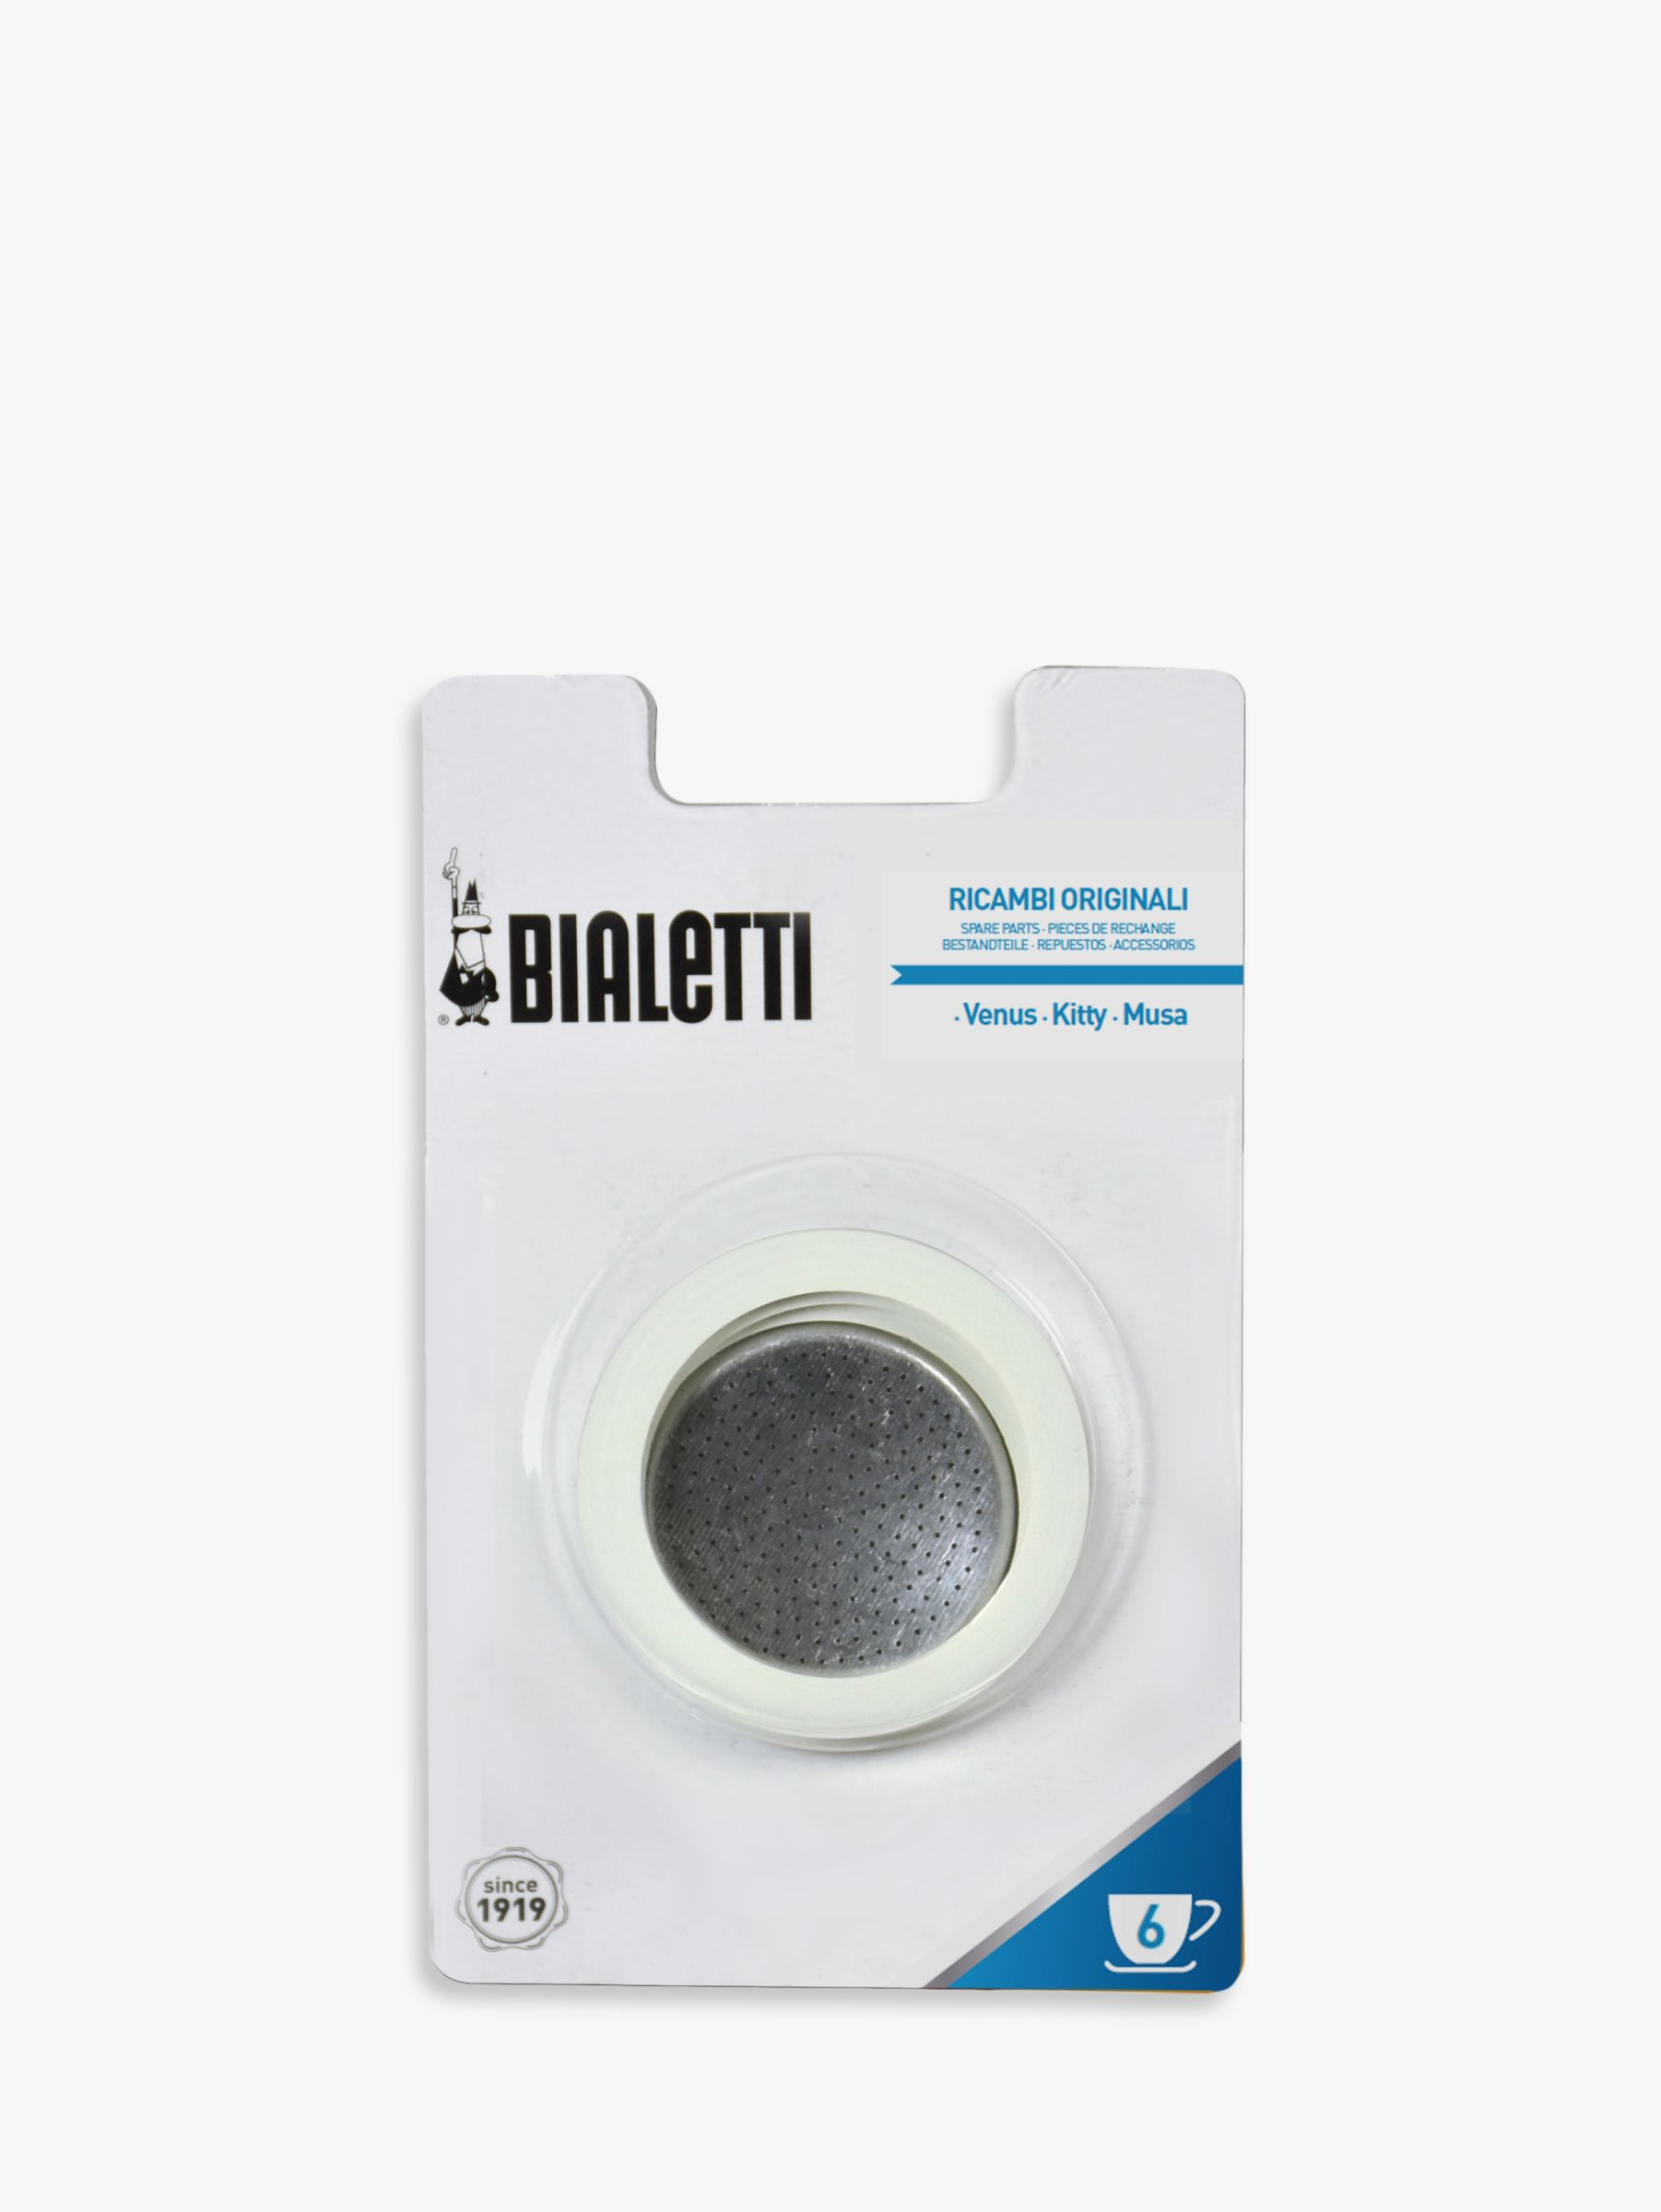 Bialetti Coffee Maker John Lewis : Buy Bialetti Venus Induction Stove-top Coffee Maker Replacement Gasket and Filter John Lewis